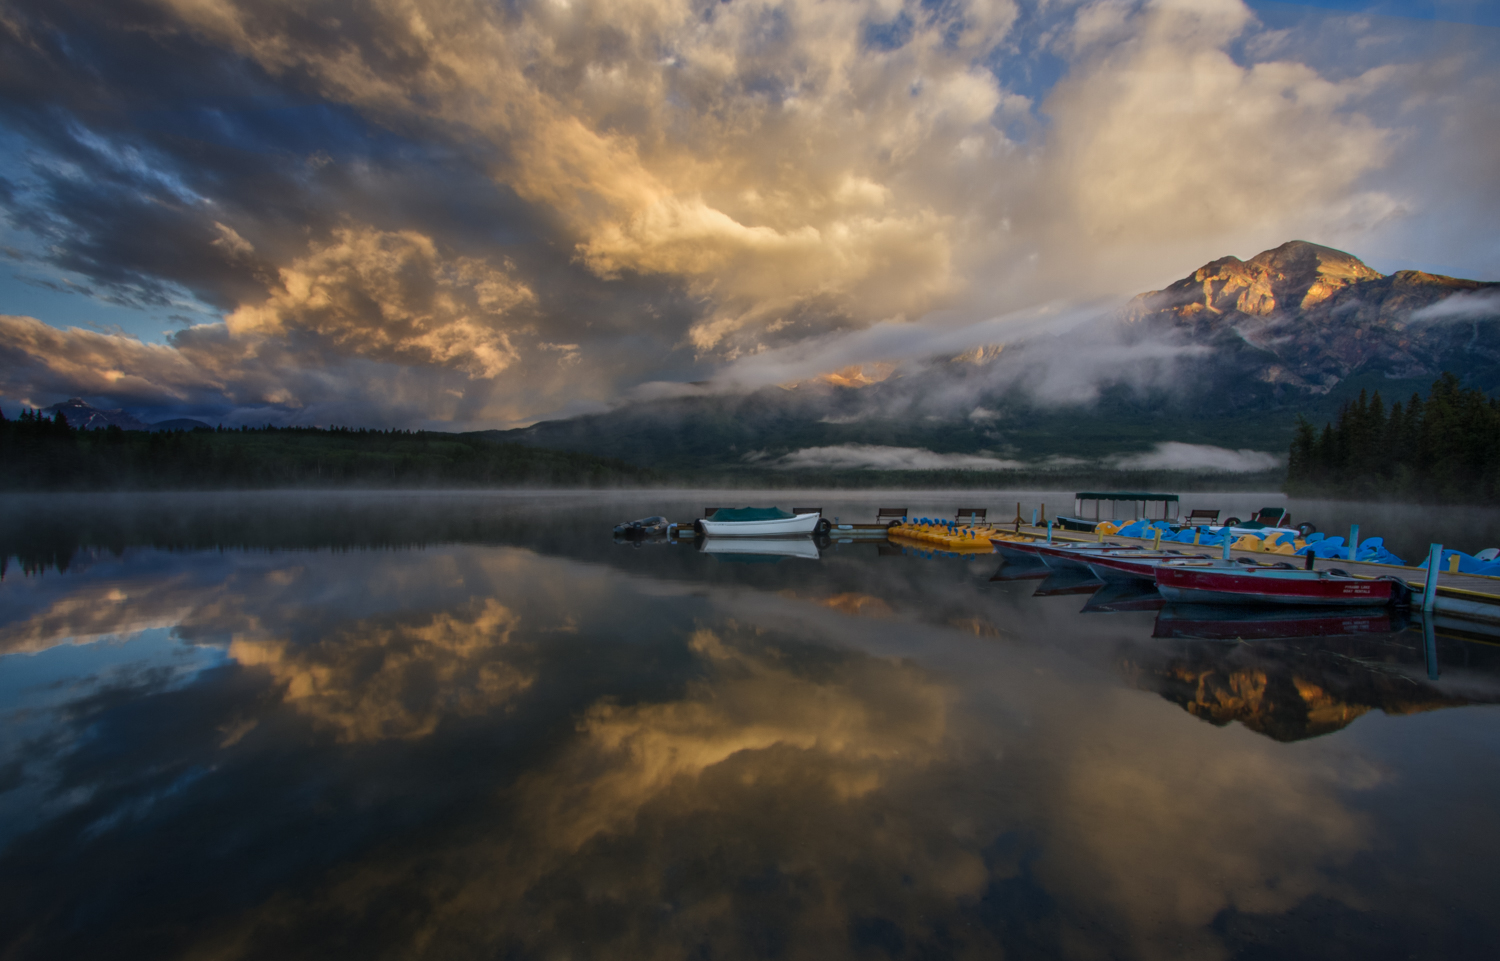 Canadian Rockies' Sunrise at Pyramid Lake  More textures, more beautiful light on magnificent clouds reflected in calm water with spots of bright colors on the boats. This one was an easy pick.